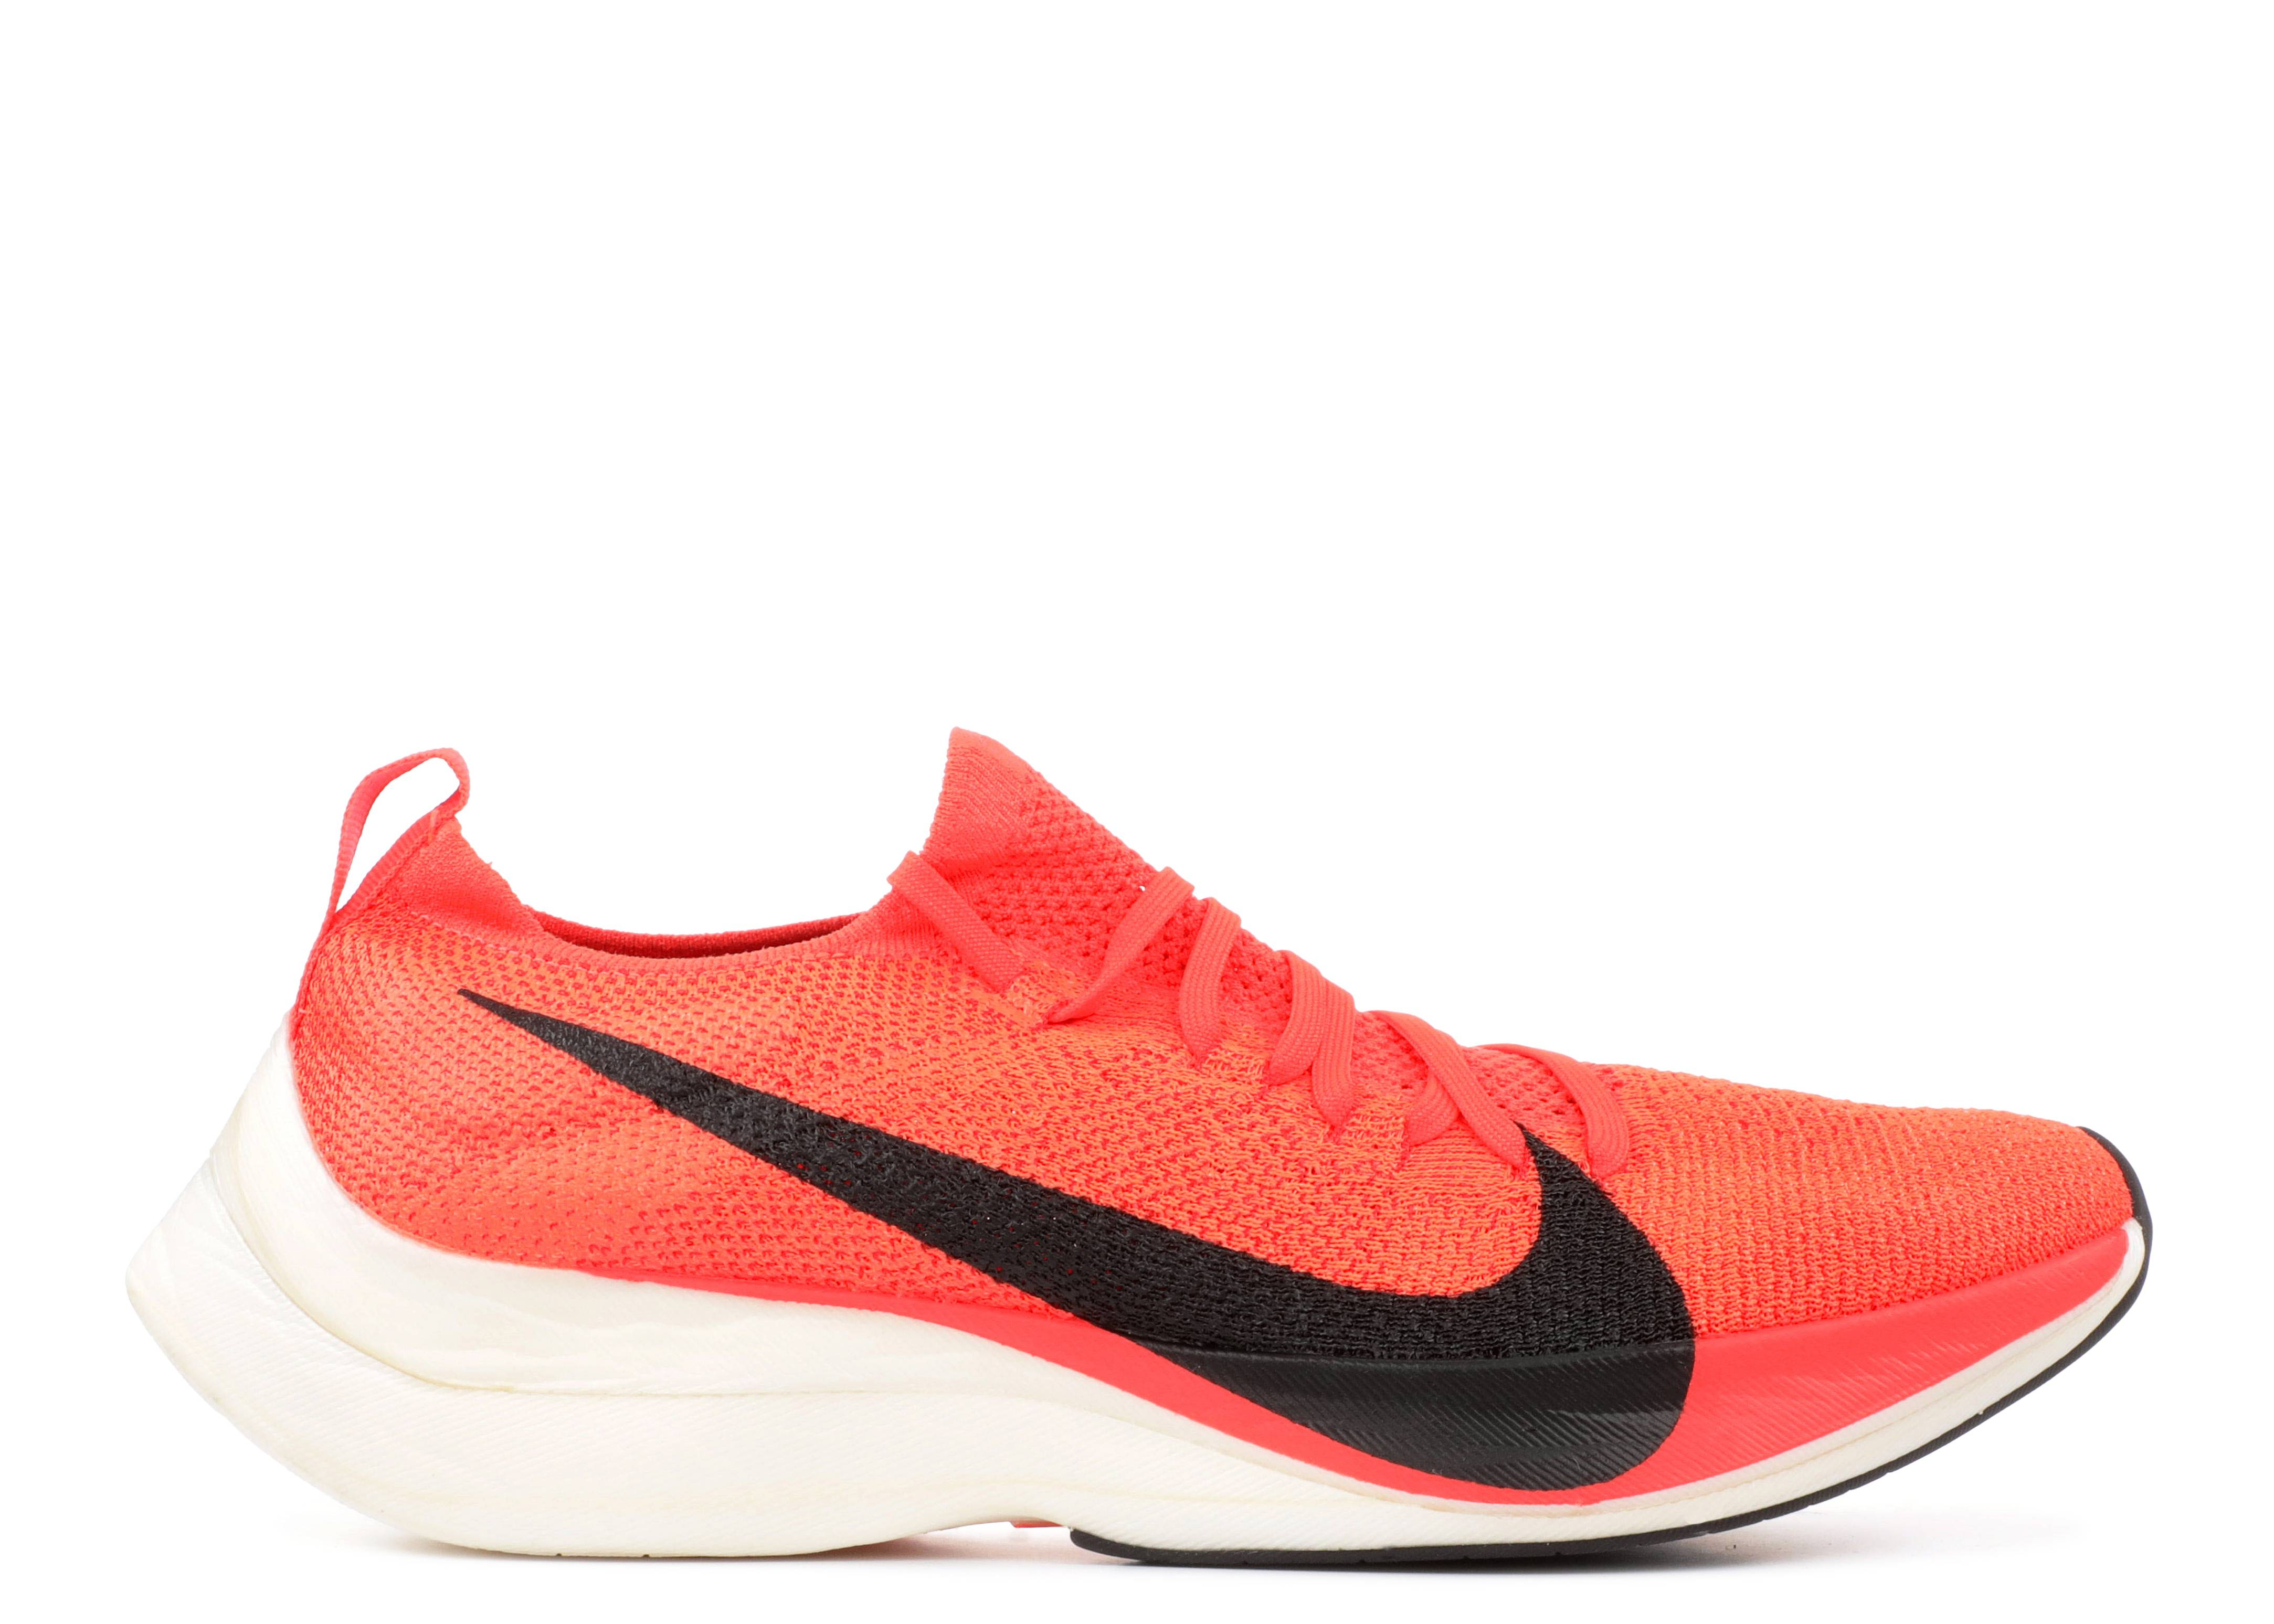 new style 1d66b 68a62 nike zoom vaporfly elite